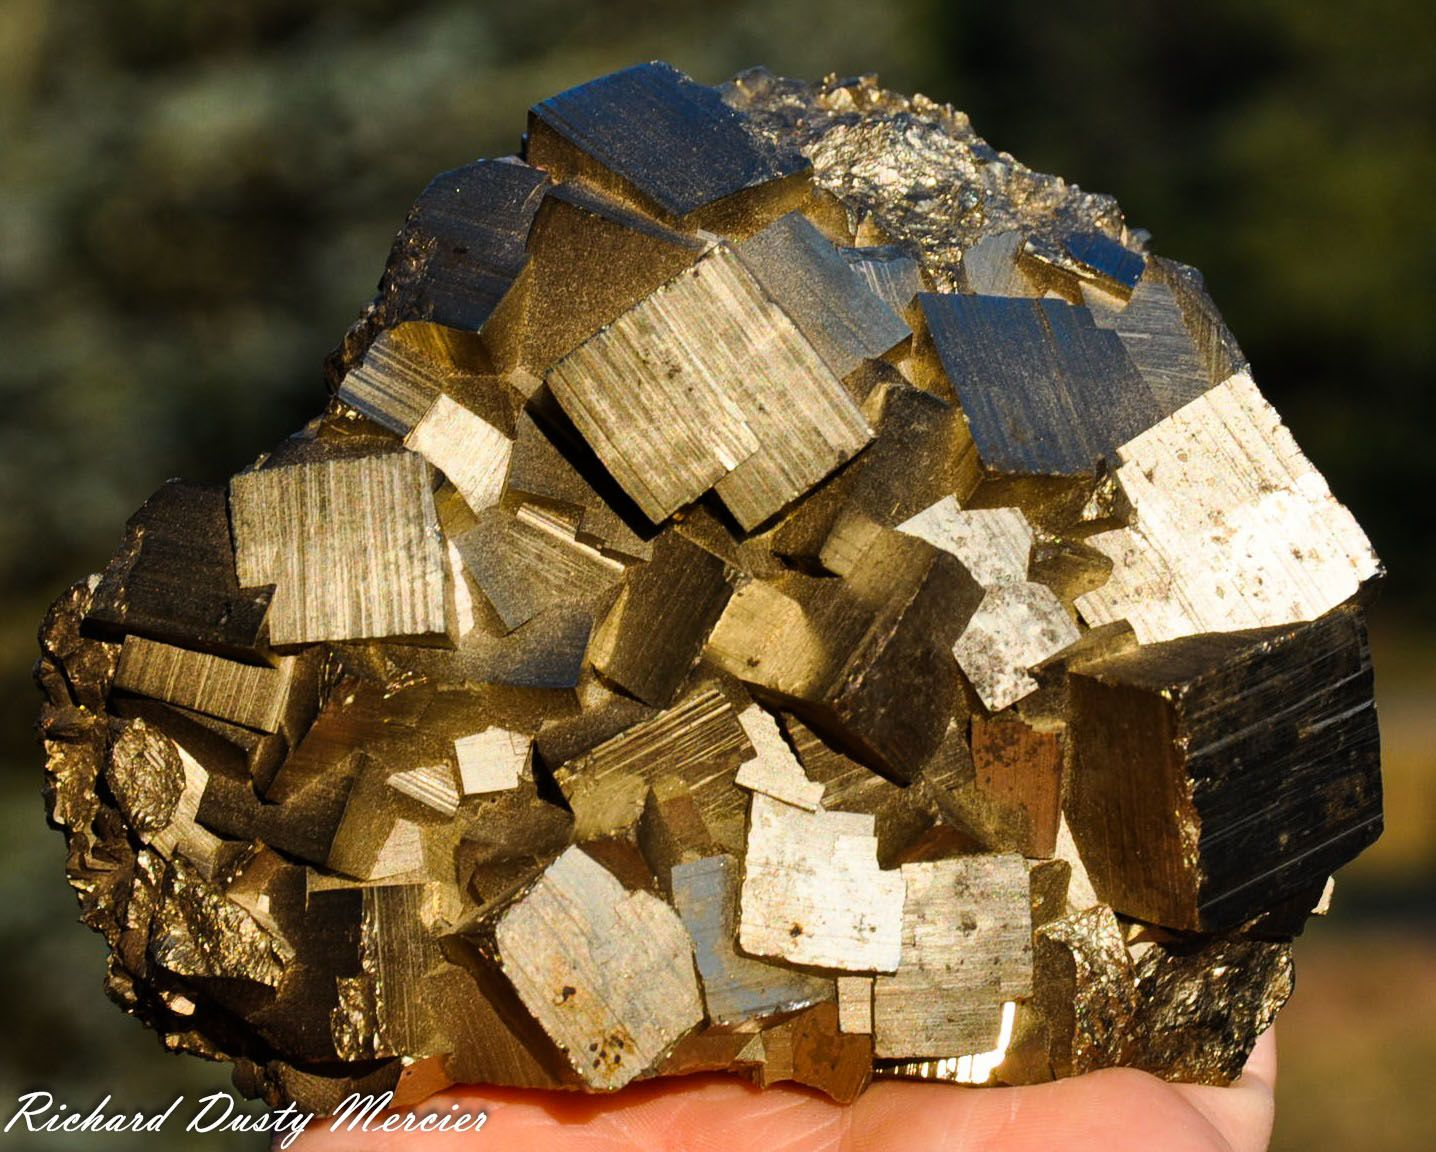 Pyrite de Racracancha Mine, Tinyahuarco District, Cerro de Pasco Province, Pasco Department, Pérou